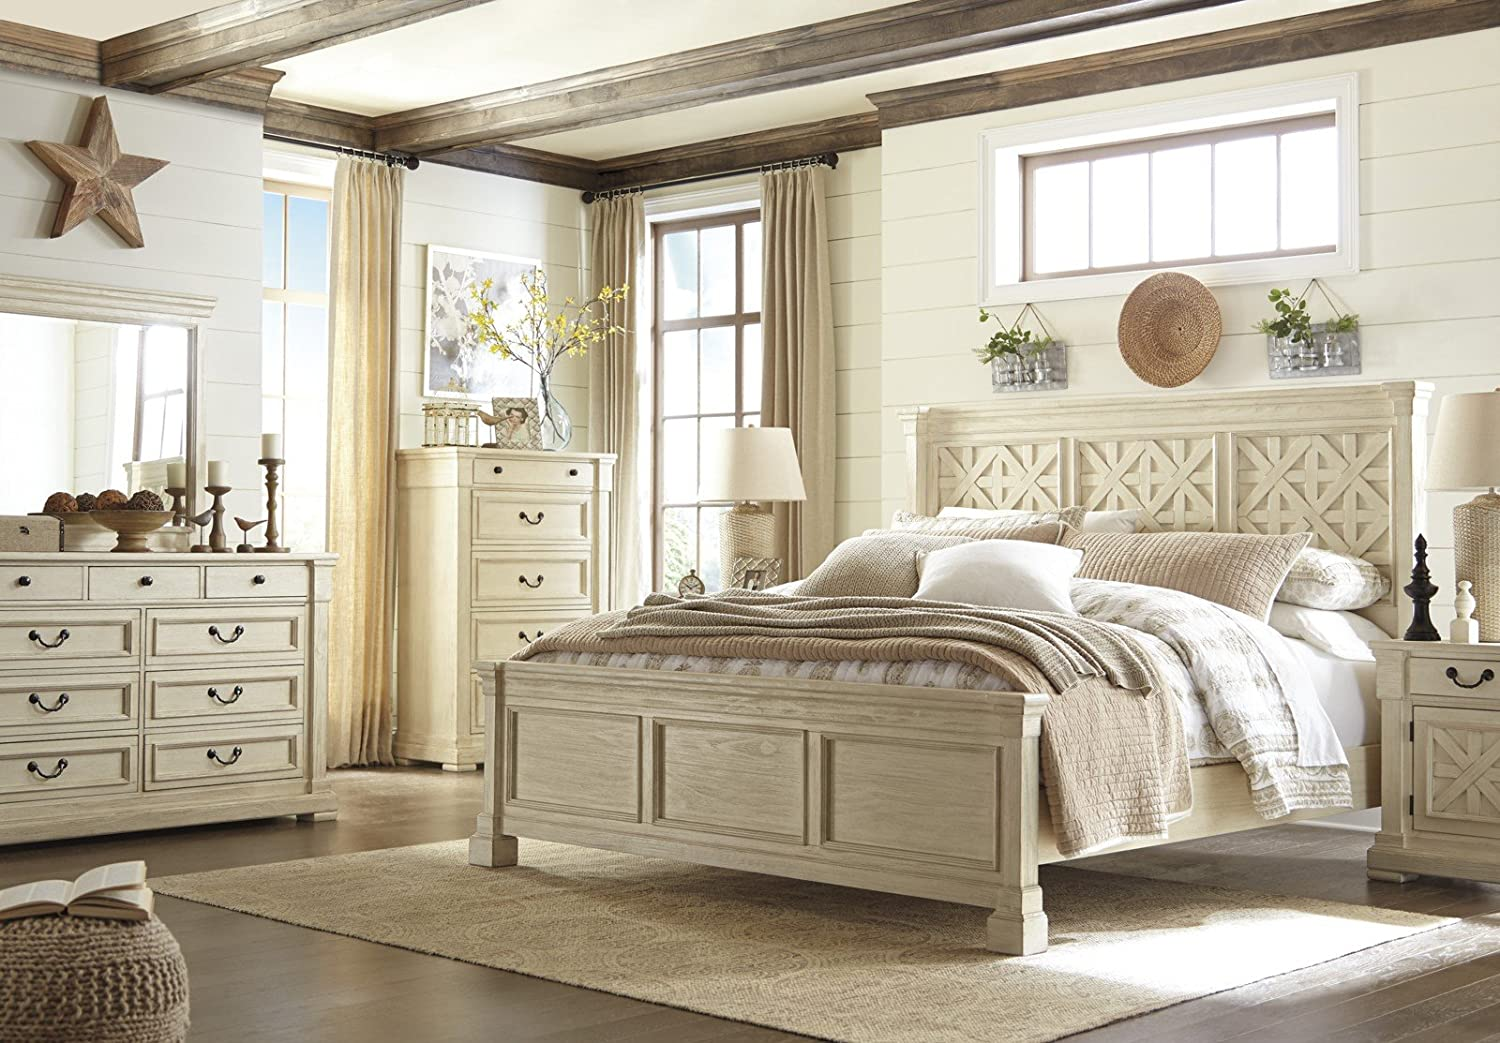 Signature Design by Ashley Bolanburg Bedroom Set with Queen Bed